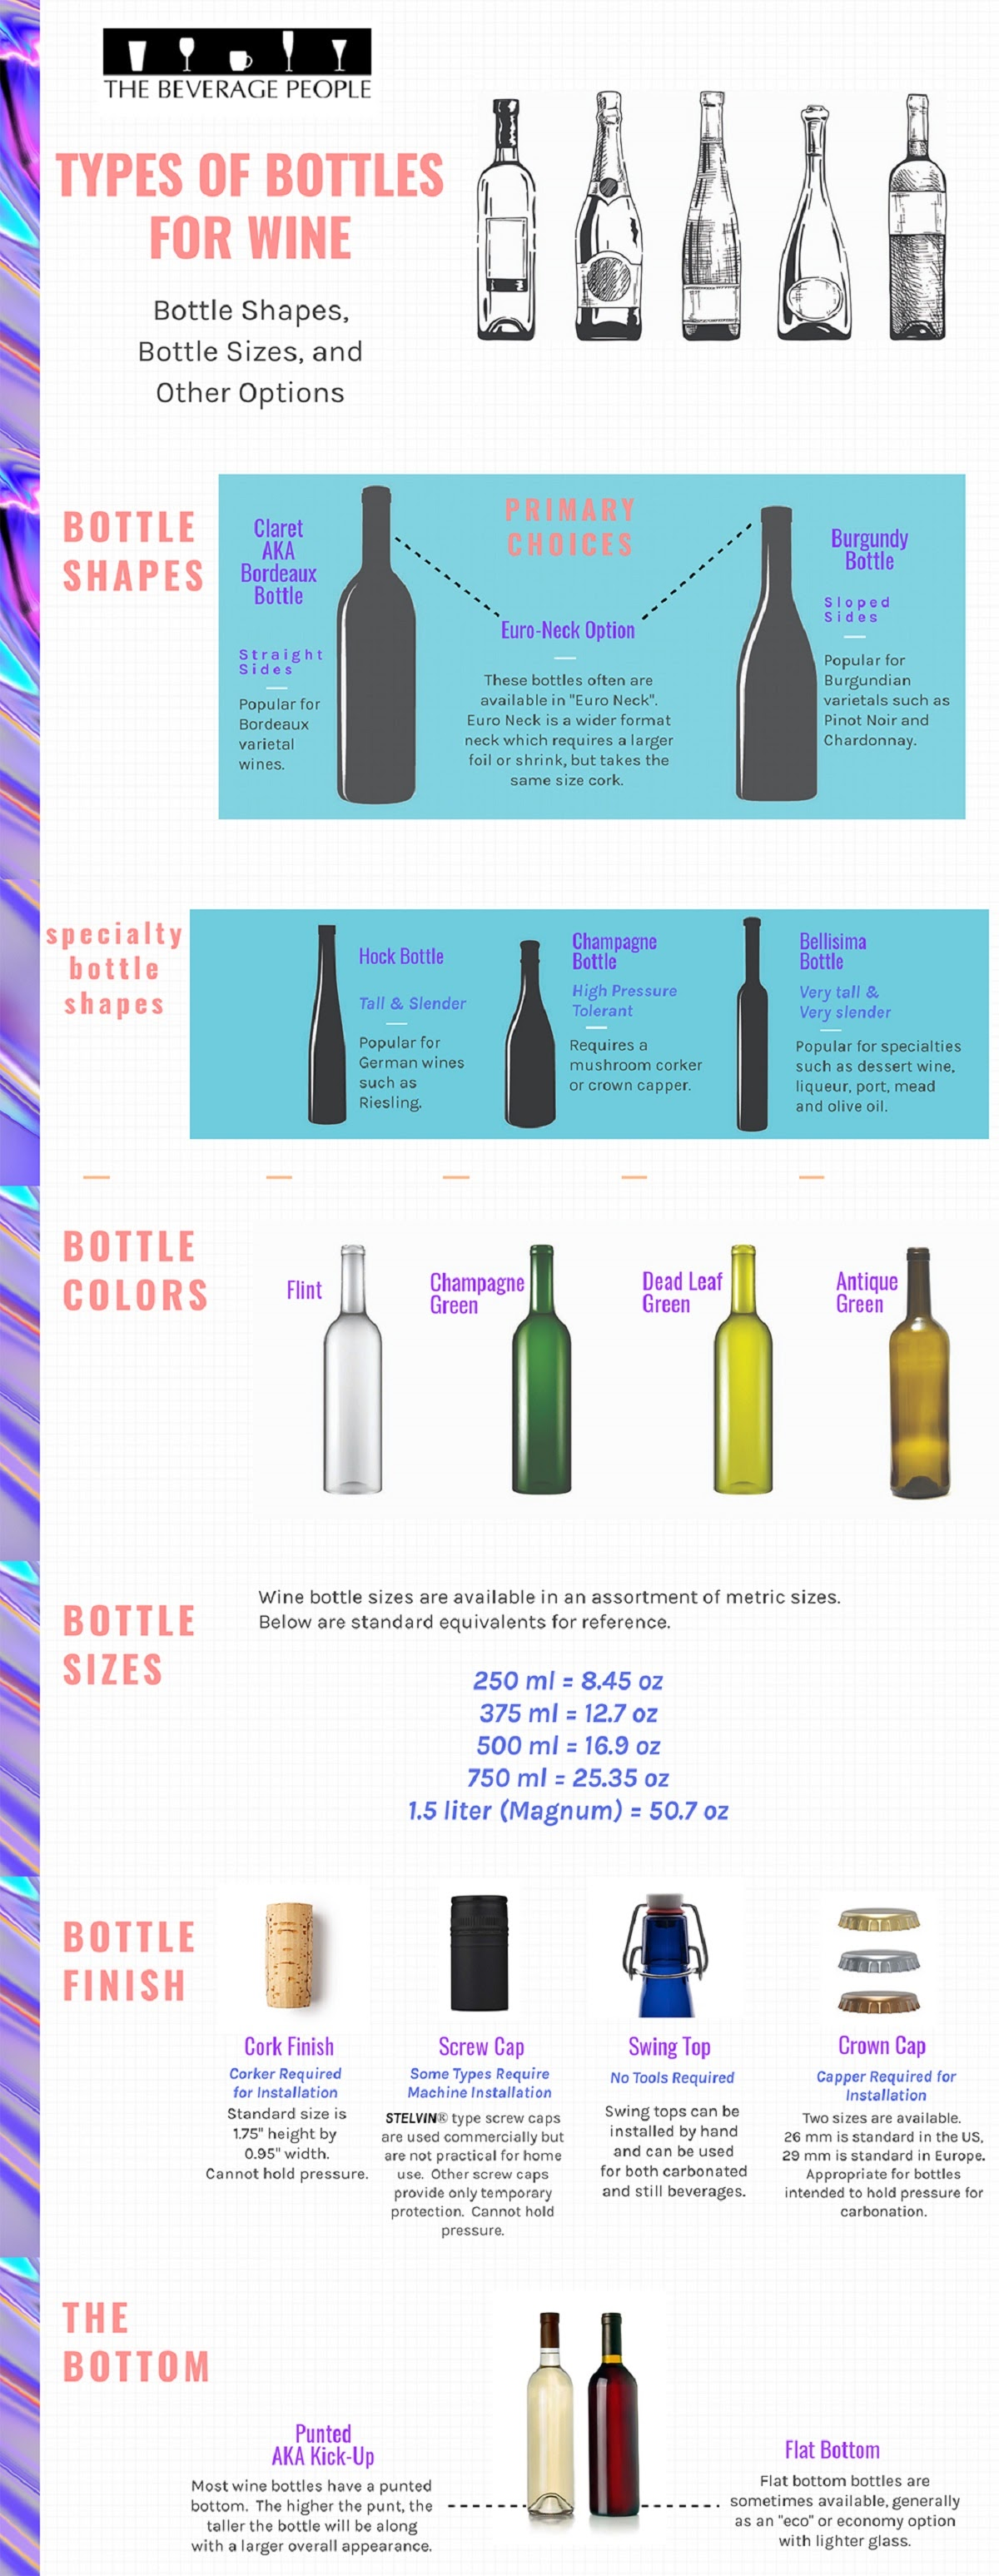 types-of-bottles-for-wine-bottle-shapes-bottle-sizes-and-other-options-infographic